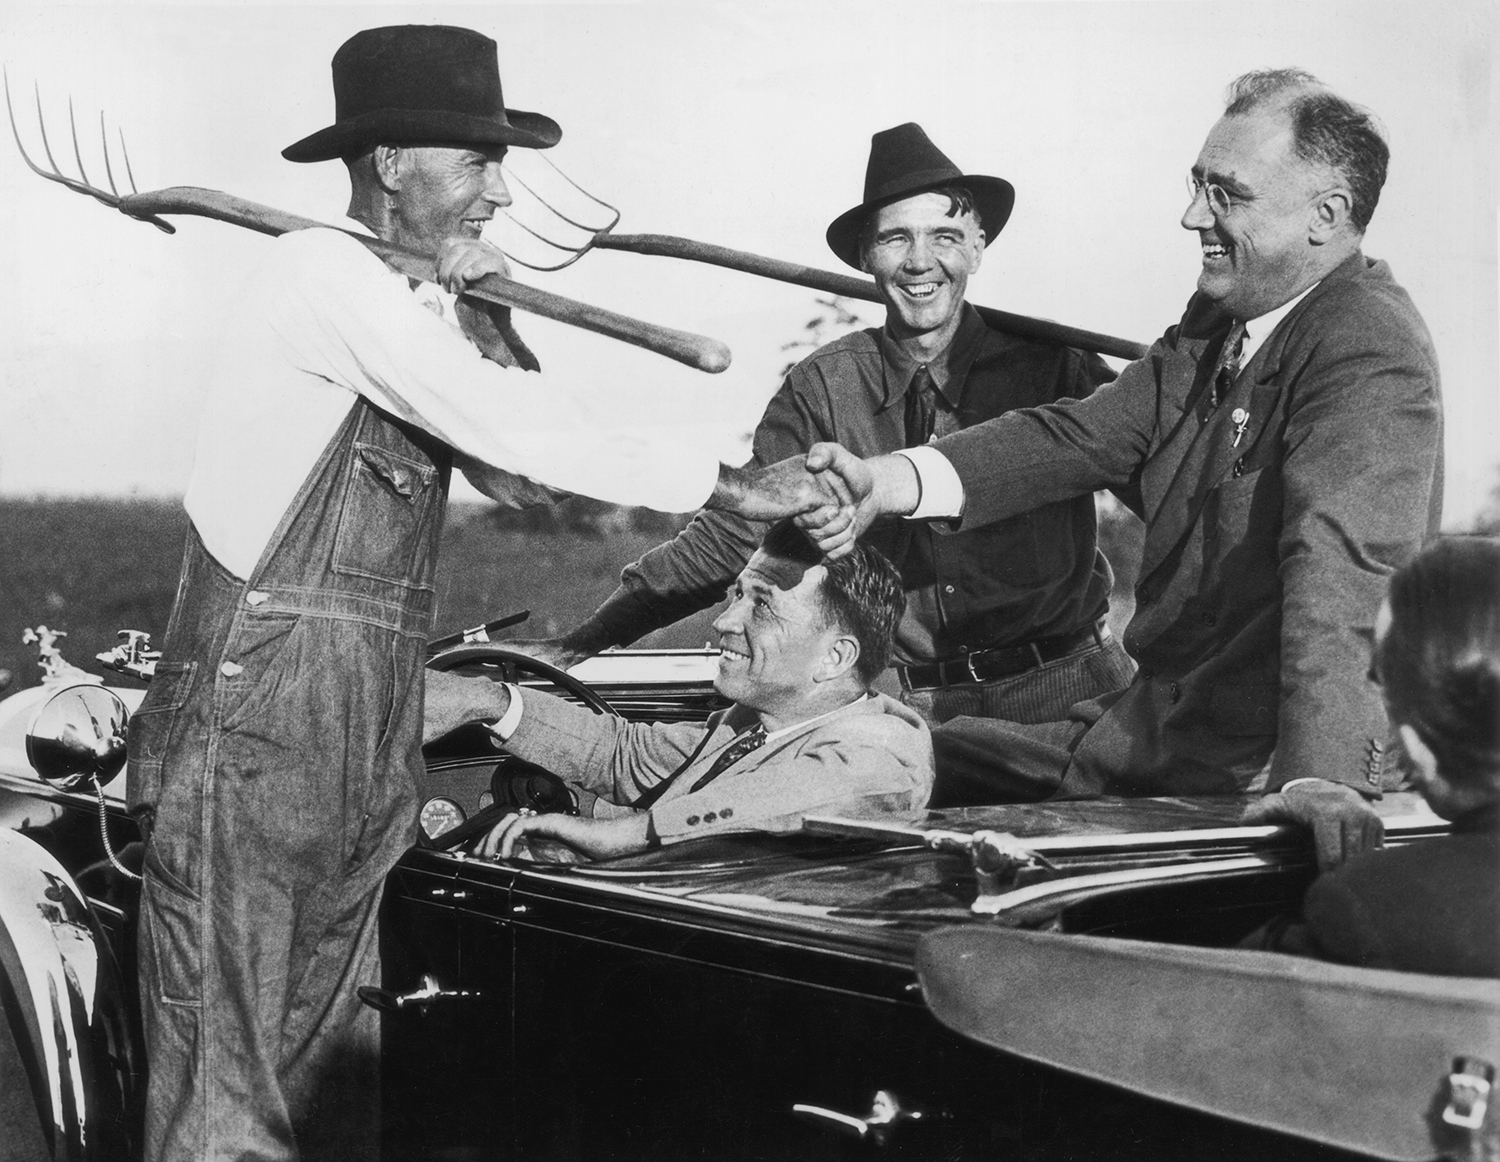 Roosevelt talks with two Georgia farmers in the year he was elected president in 1932.